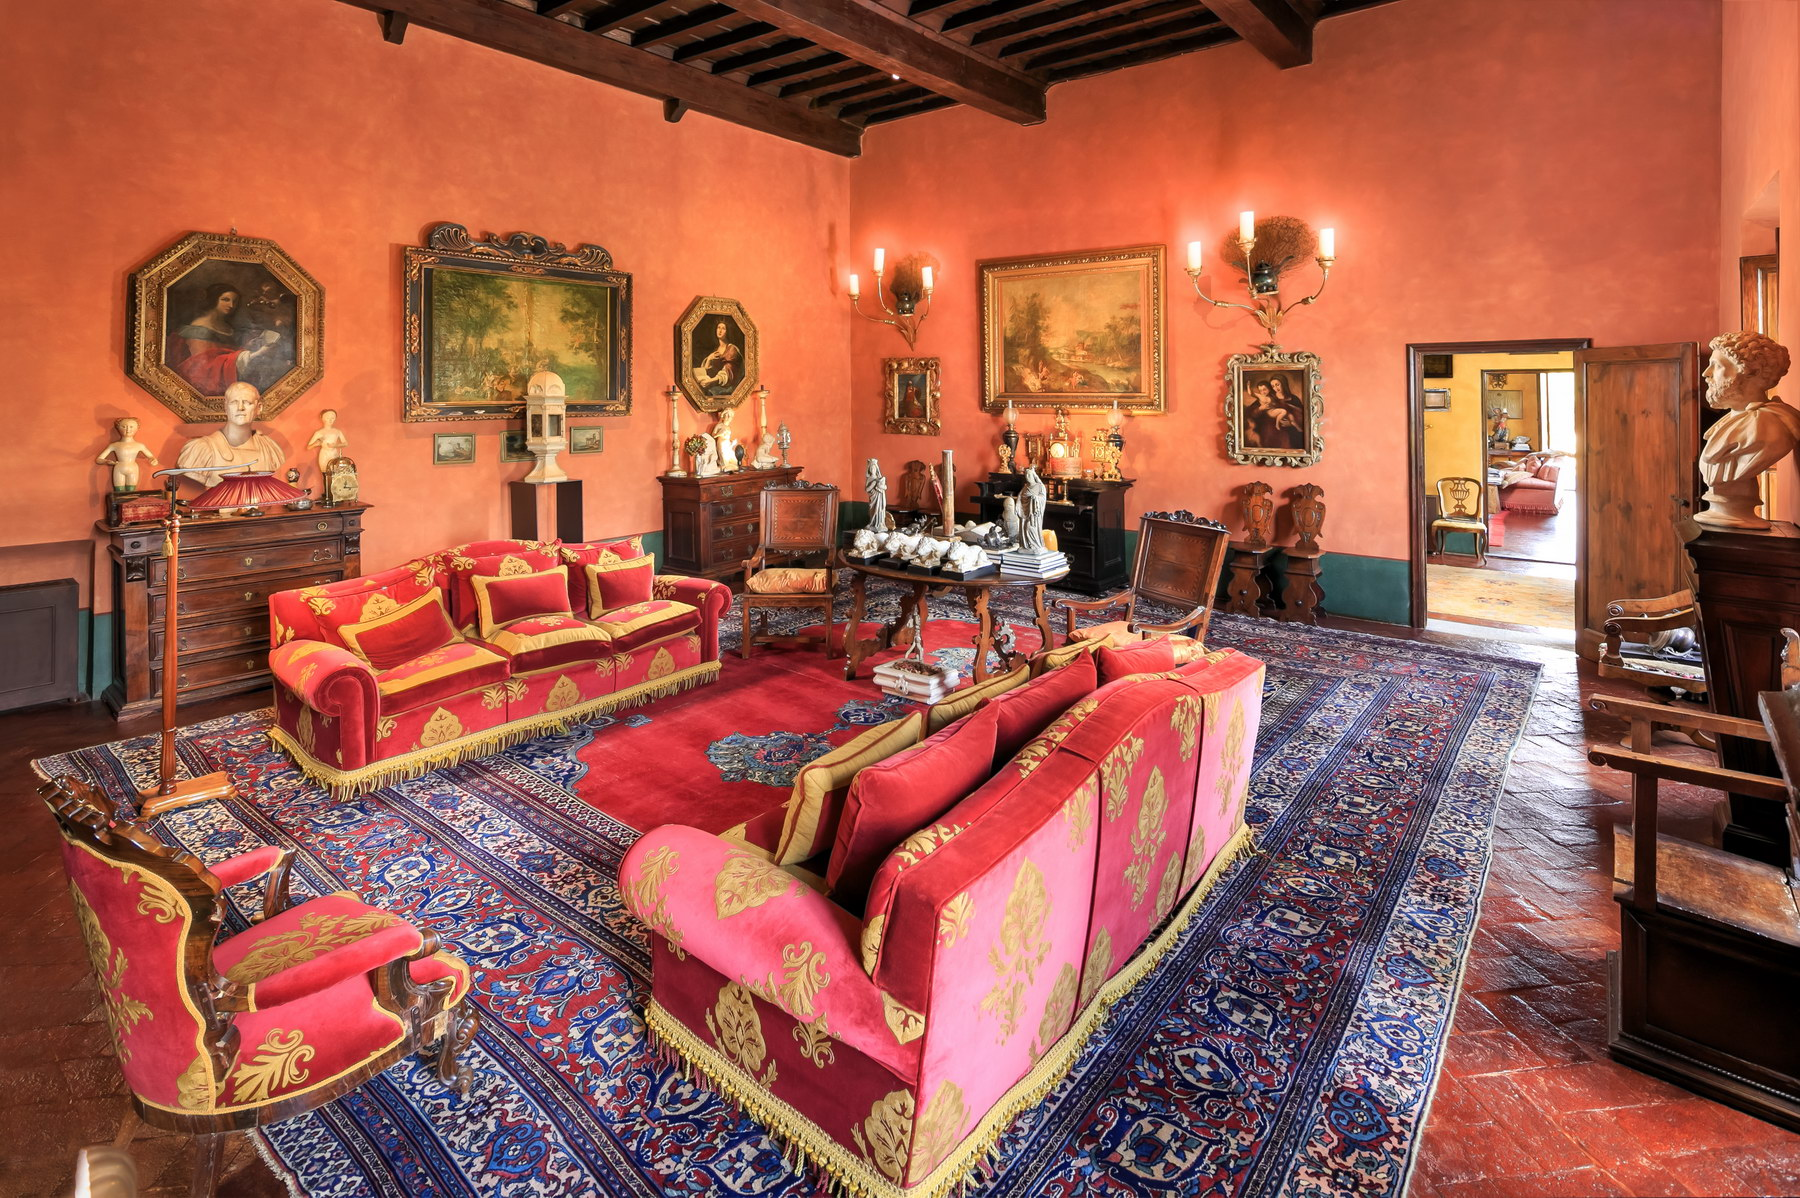 Apartment for Sale at Wonderful frescoed apartment nestled in the green Via della Piazzola Firenze, 50133 Italy